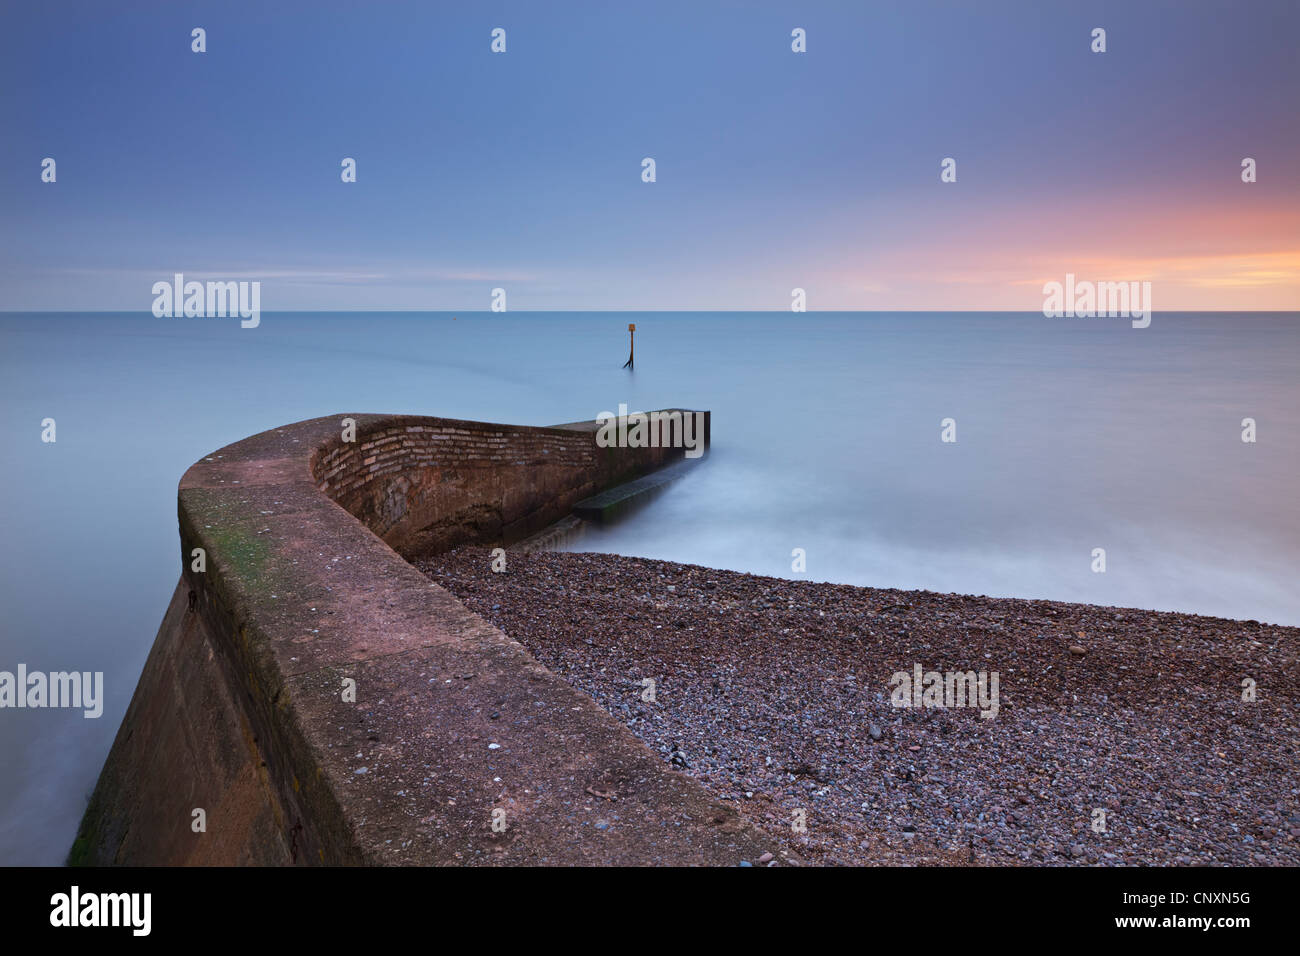 Stone jetty on Sidmouth beachfront at sunset, Sidmouth, Devon, England. Winter (January) 2012. - Stock Image